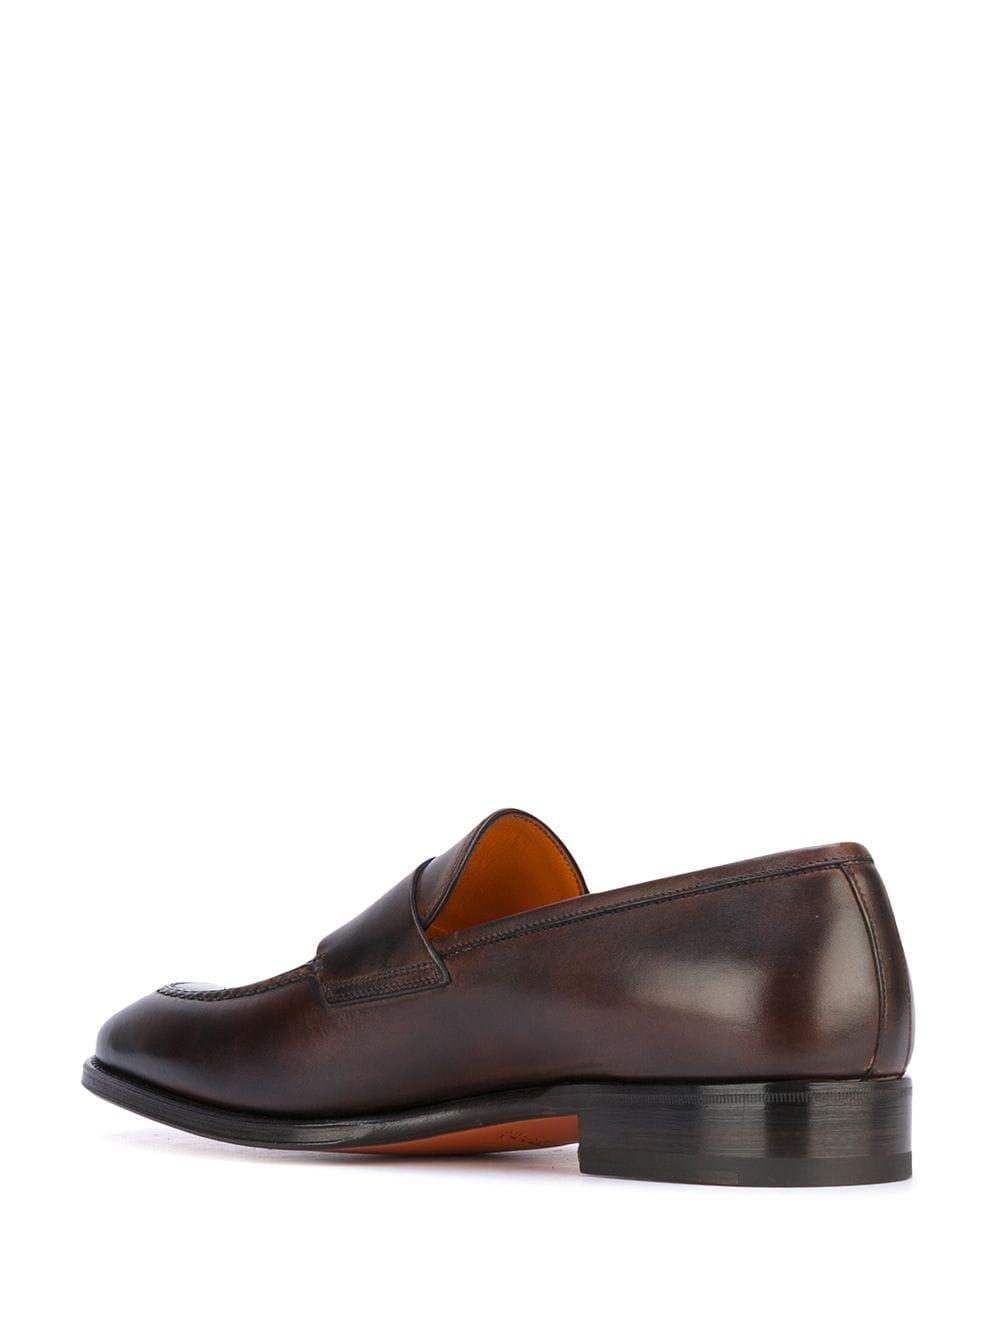 Santoni Leather Classic Loafers in Brown for Men